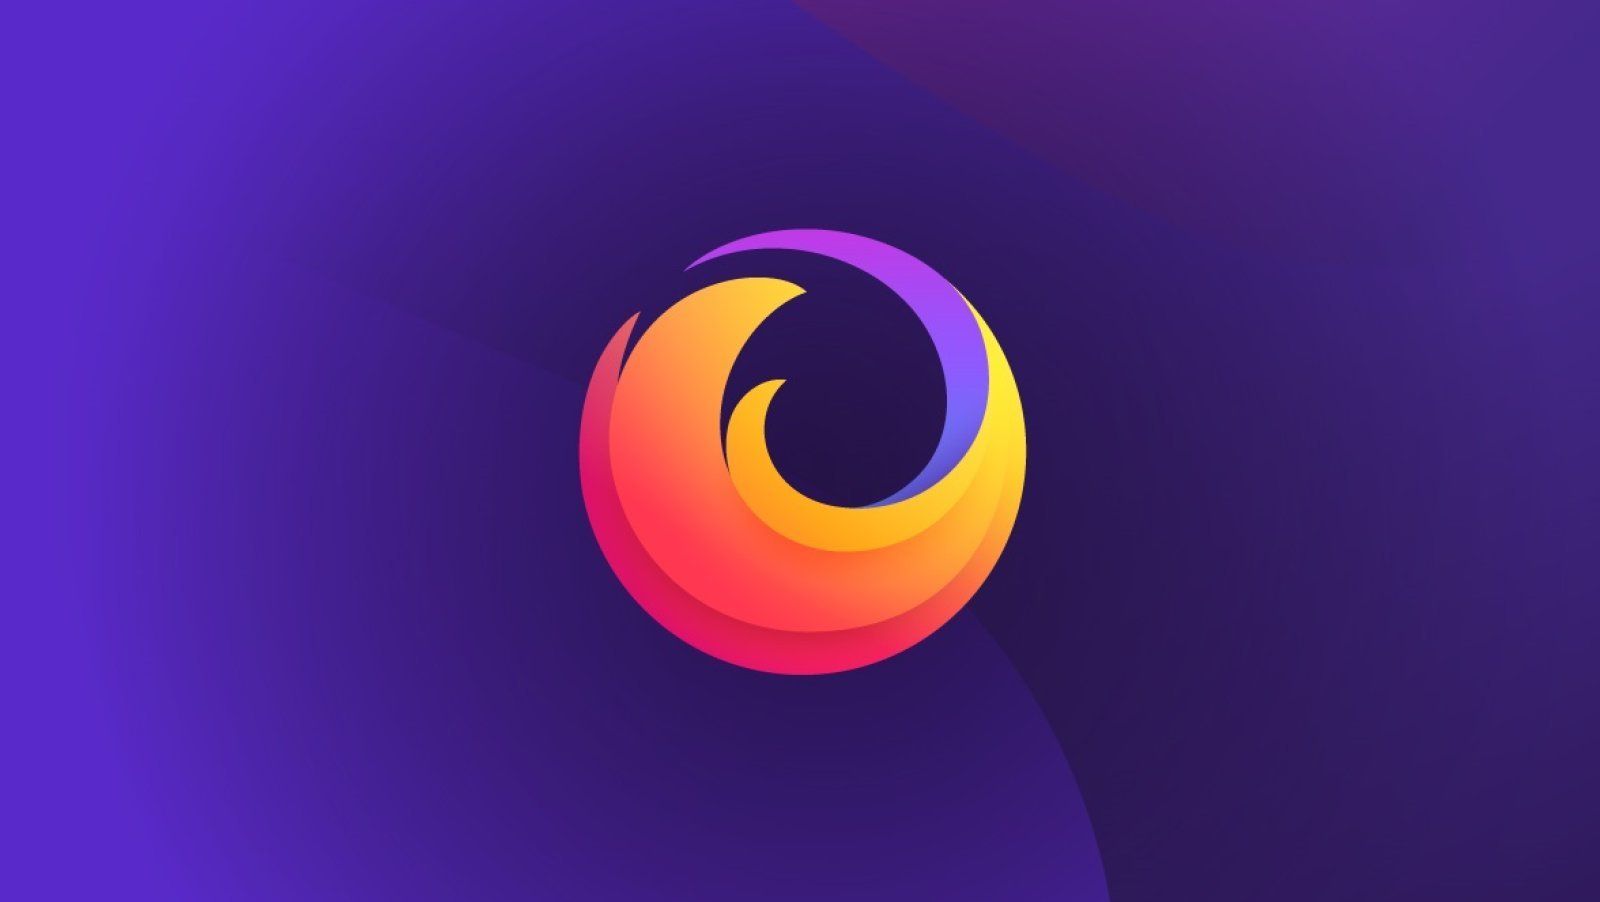 The new Firefox logos have officially arrived | Creative Bloq